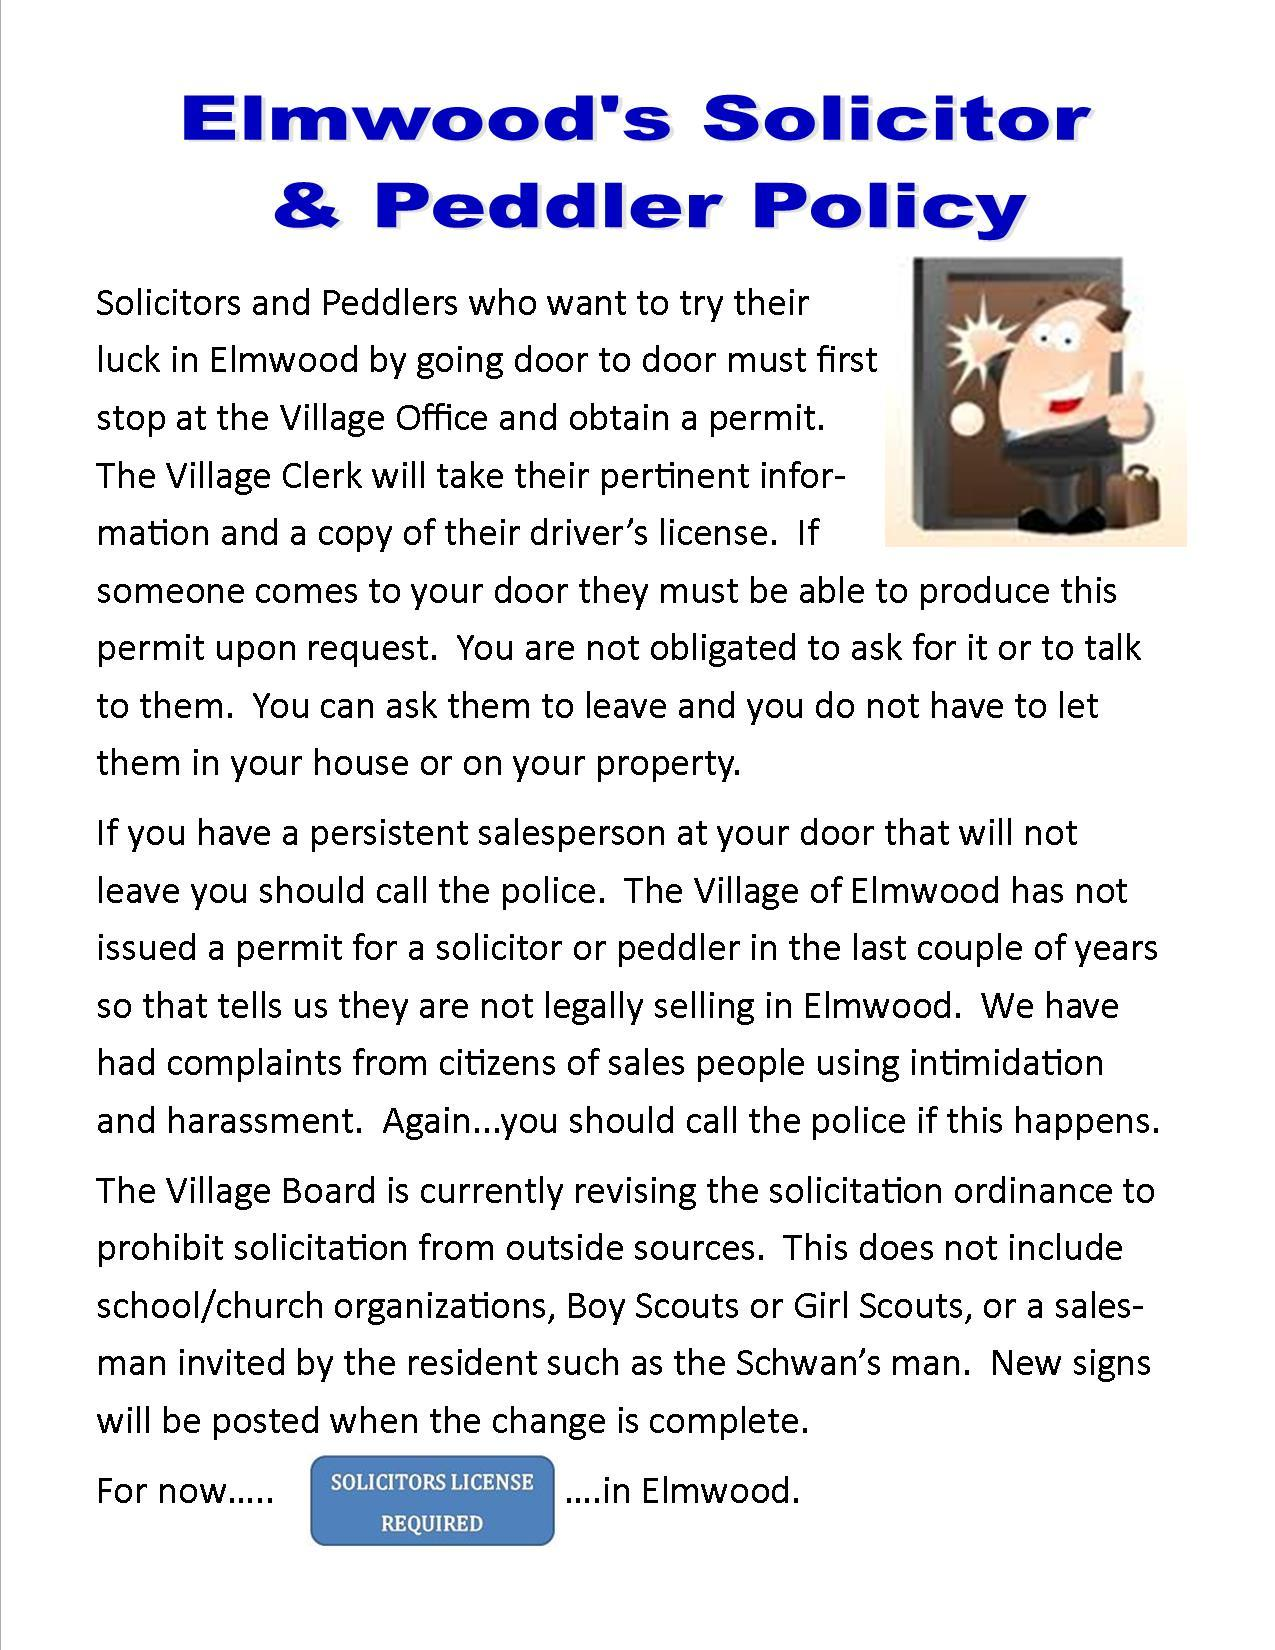 Solicitors and peddlers